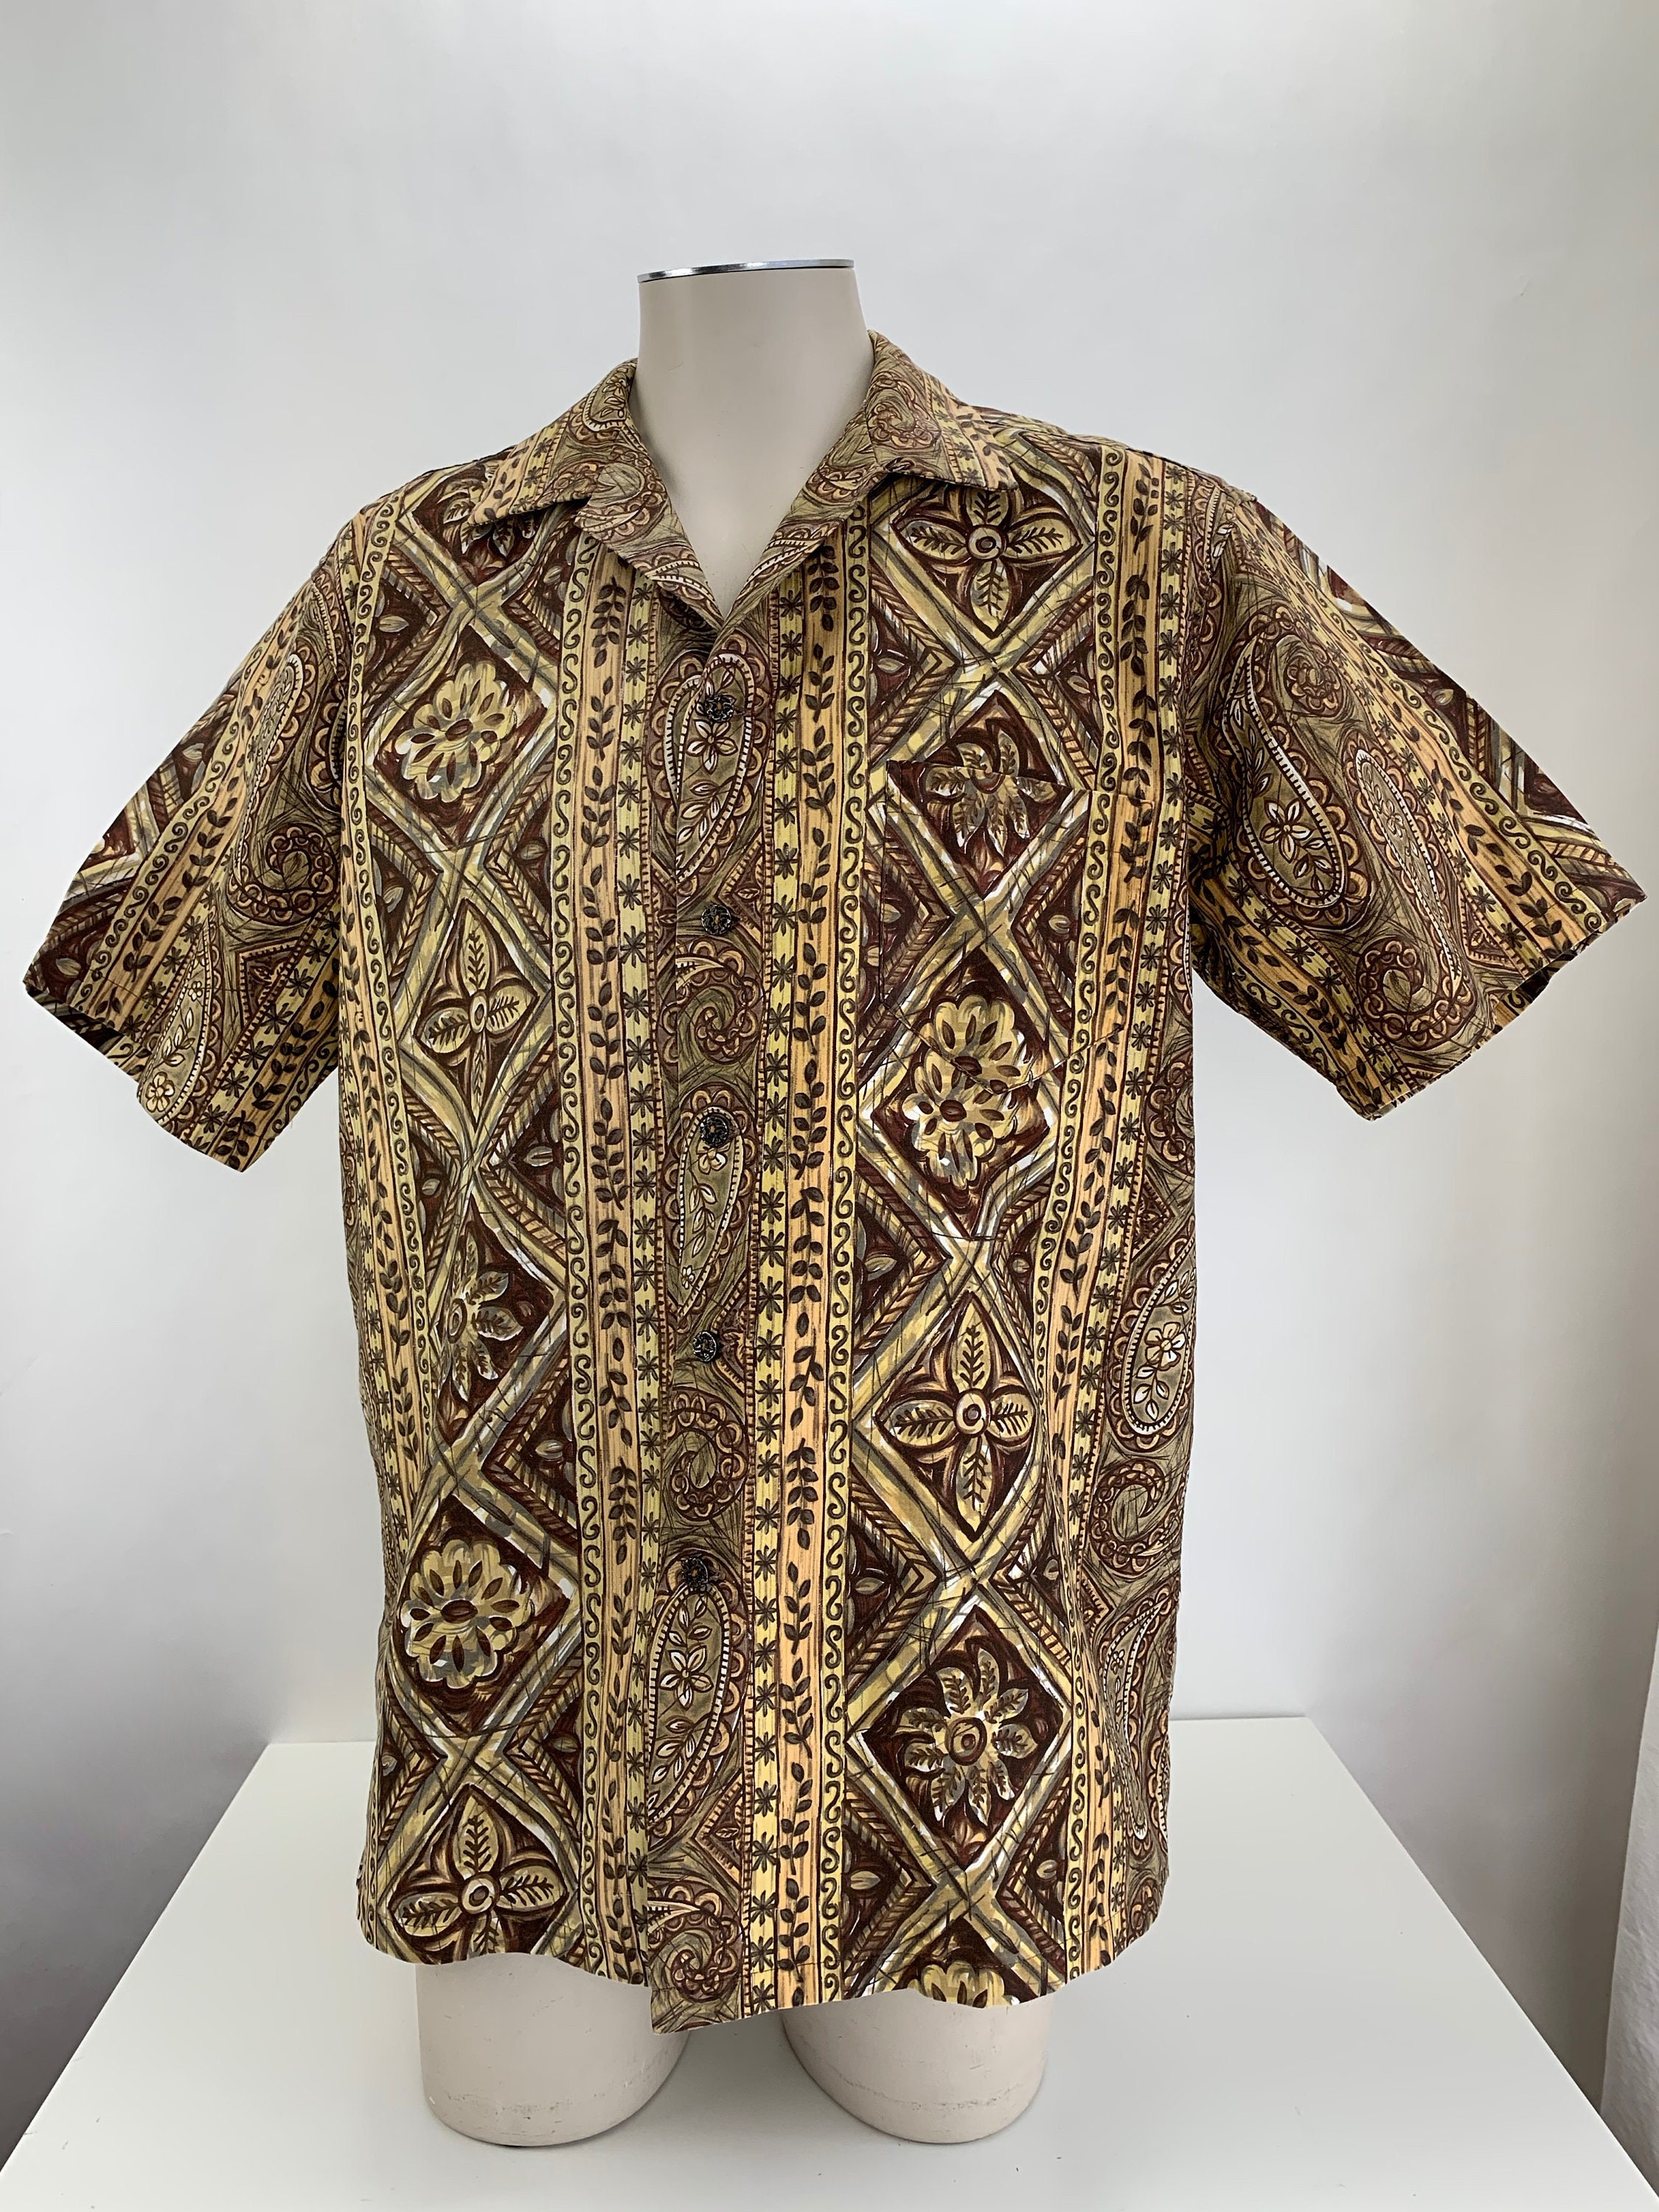 1950s Mens Hats | 50s Vintage Men's Hats 1950s - 60s Kamehameha Hawaiian Shirt All Cotton Screen Printed Fabric Abstract Pattern Made in Hawaii Mens Size Large $22.95 AT vintagedancer.com